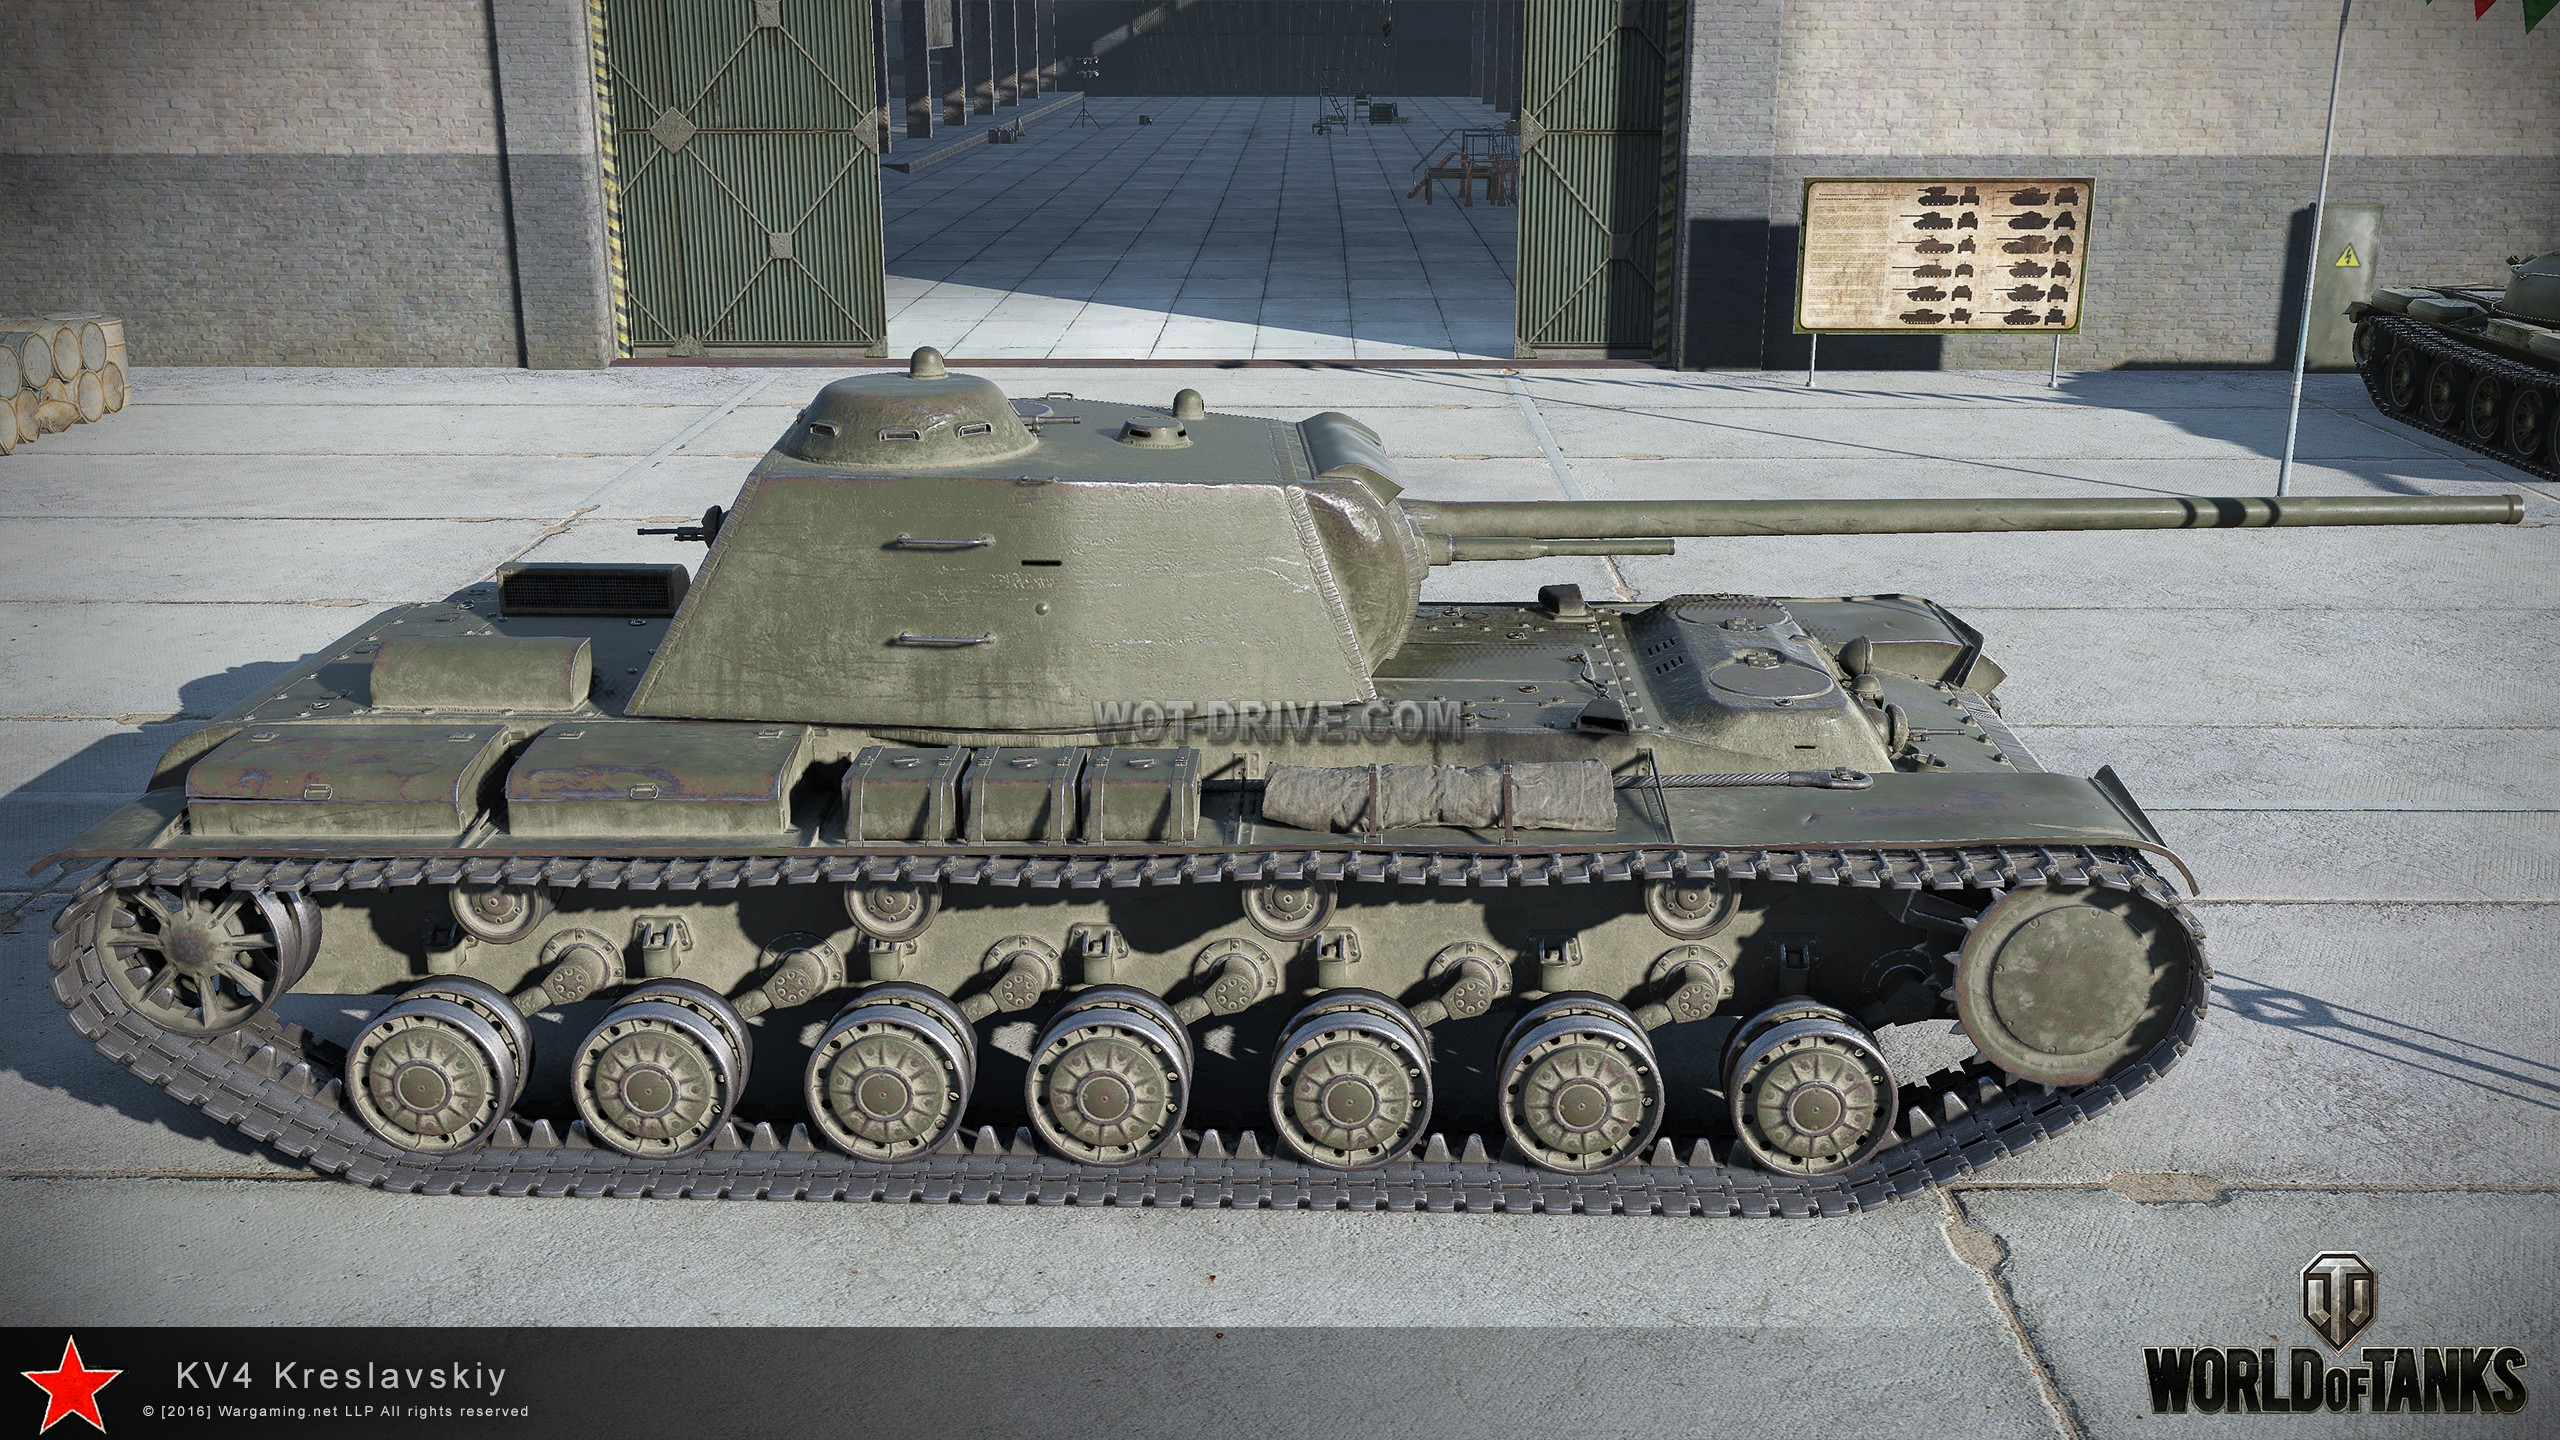 World of tanks кв-4 креславского купить купит ис 6